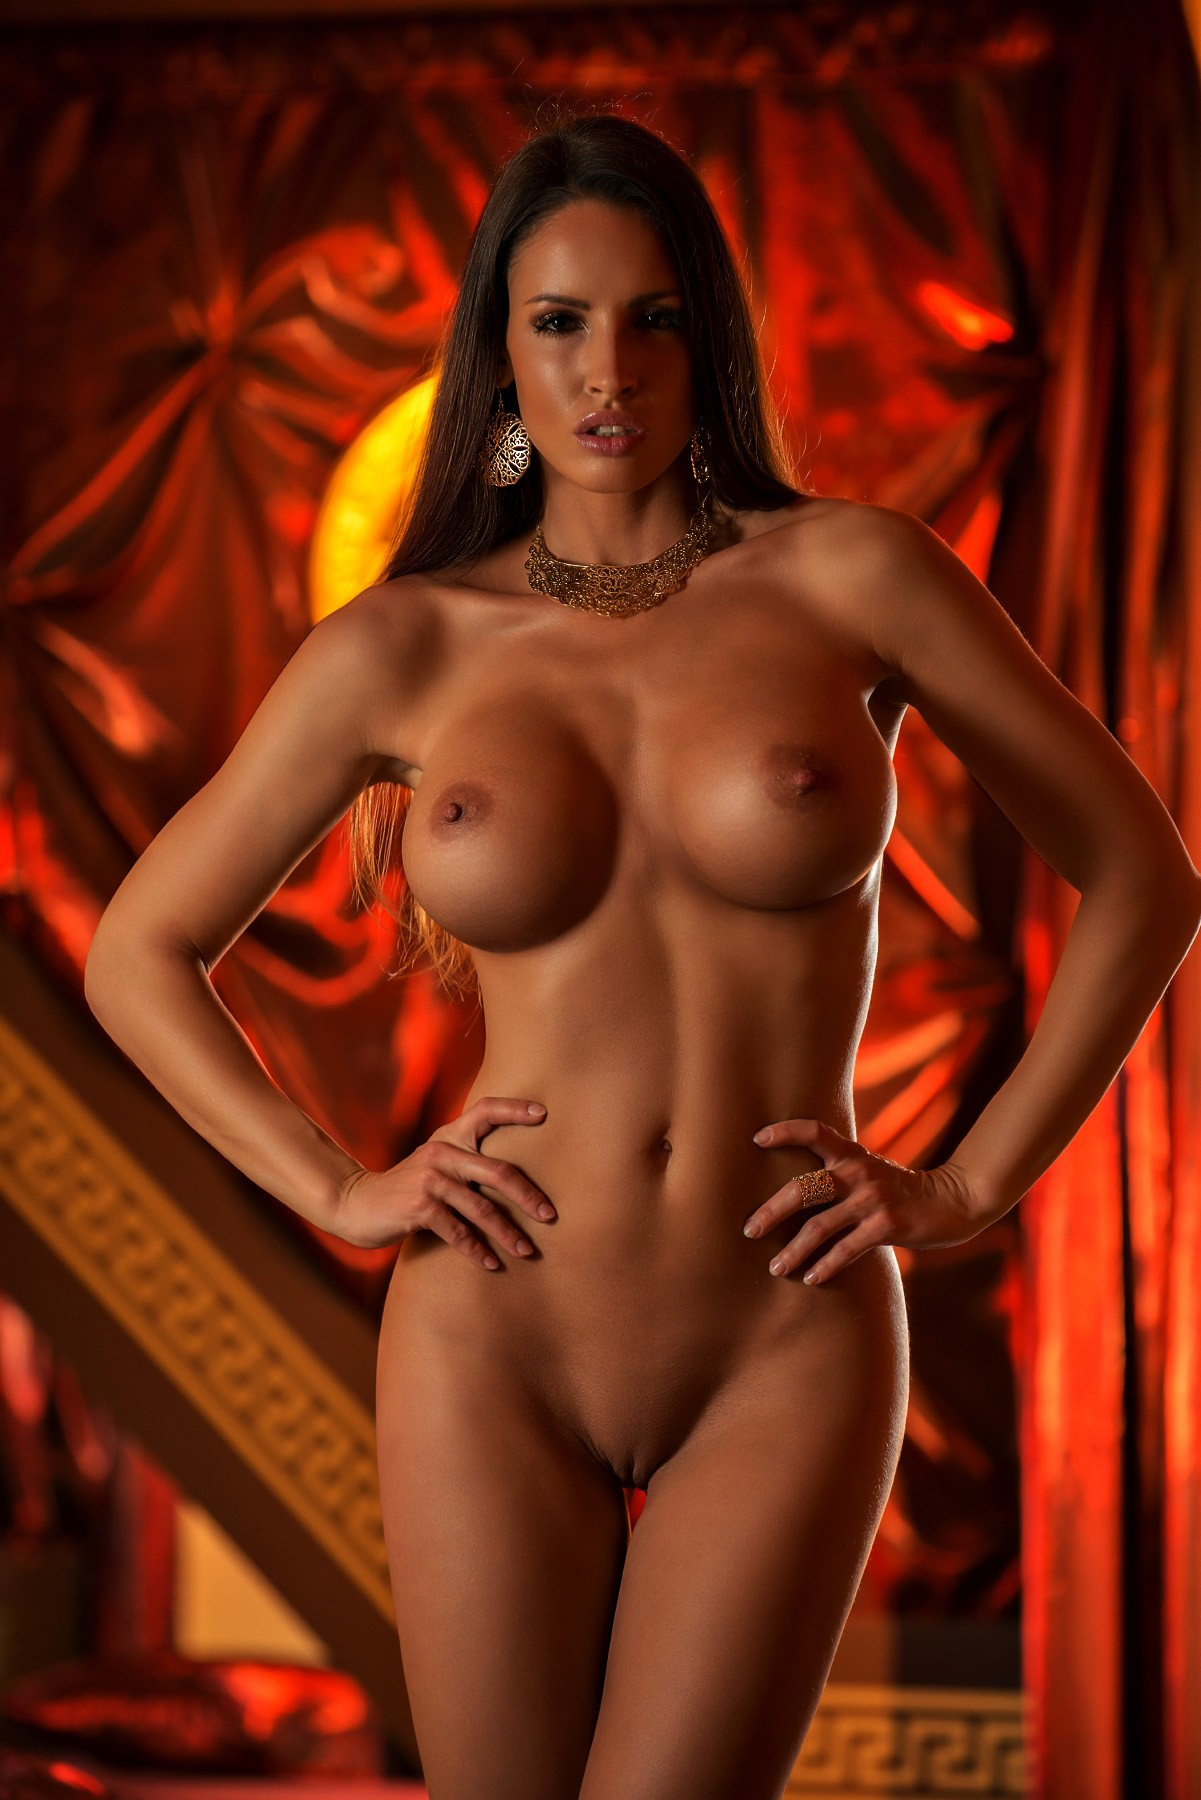 nude-photos-lucia-nude-brazilian-pussy-with-very-long-hair